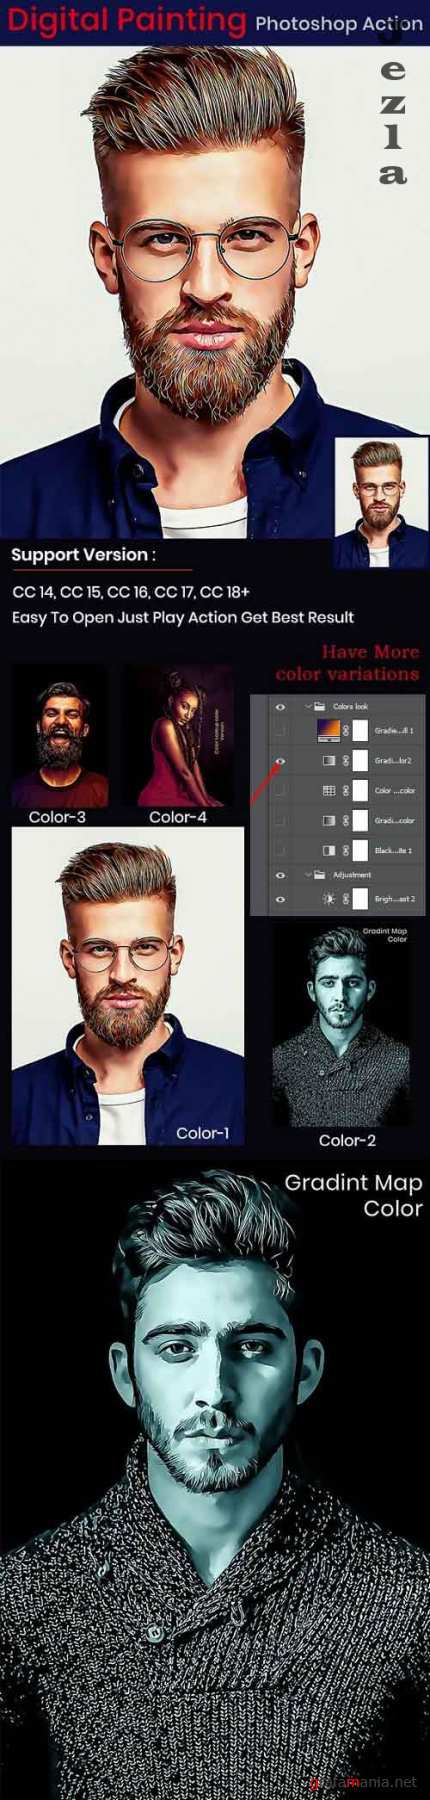 GraphicRiver - Digital Painting Photoshop Action 29902686